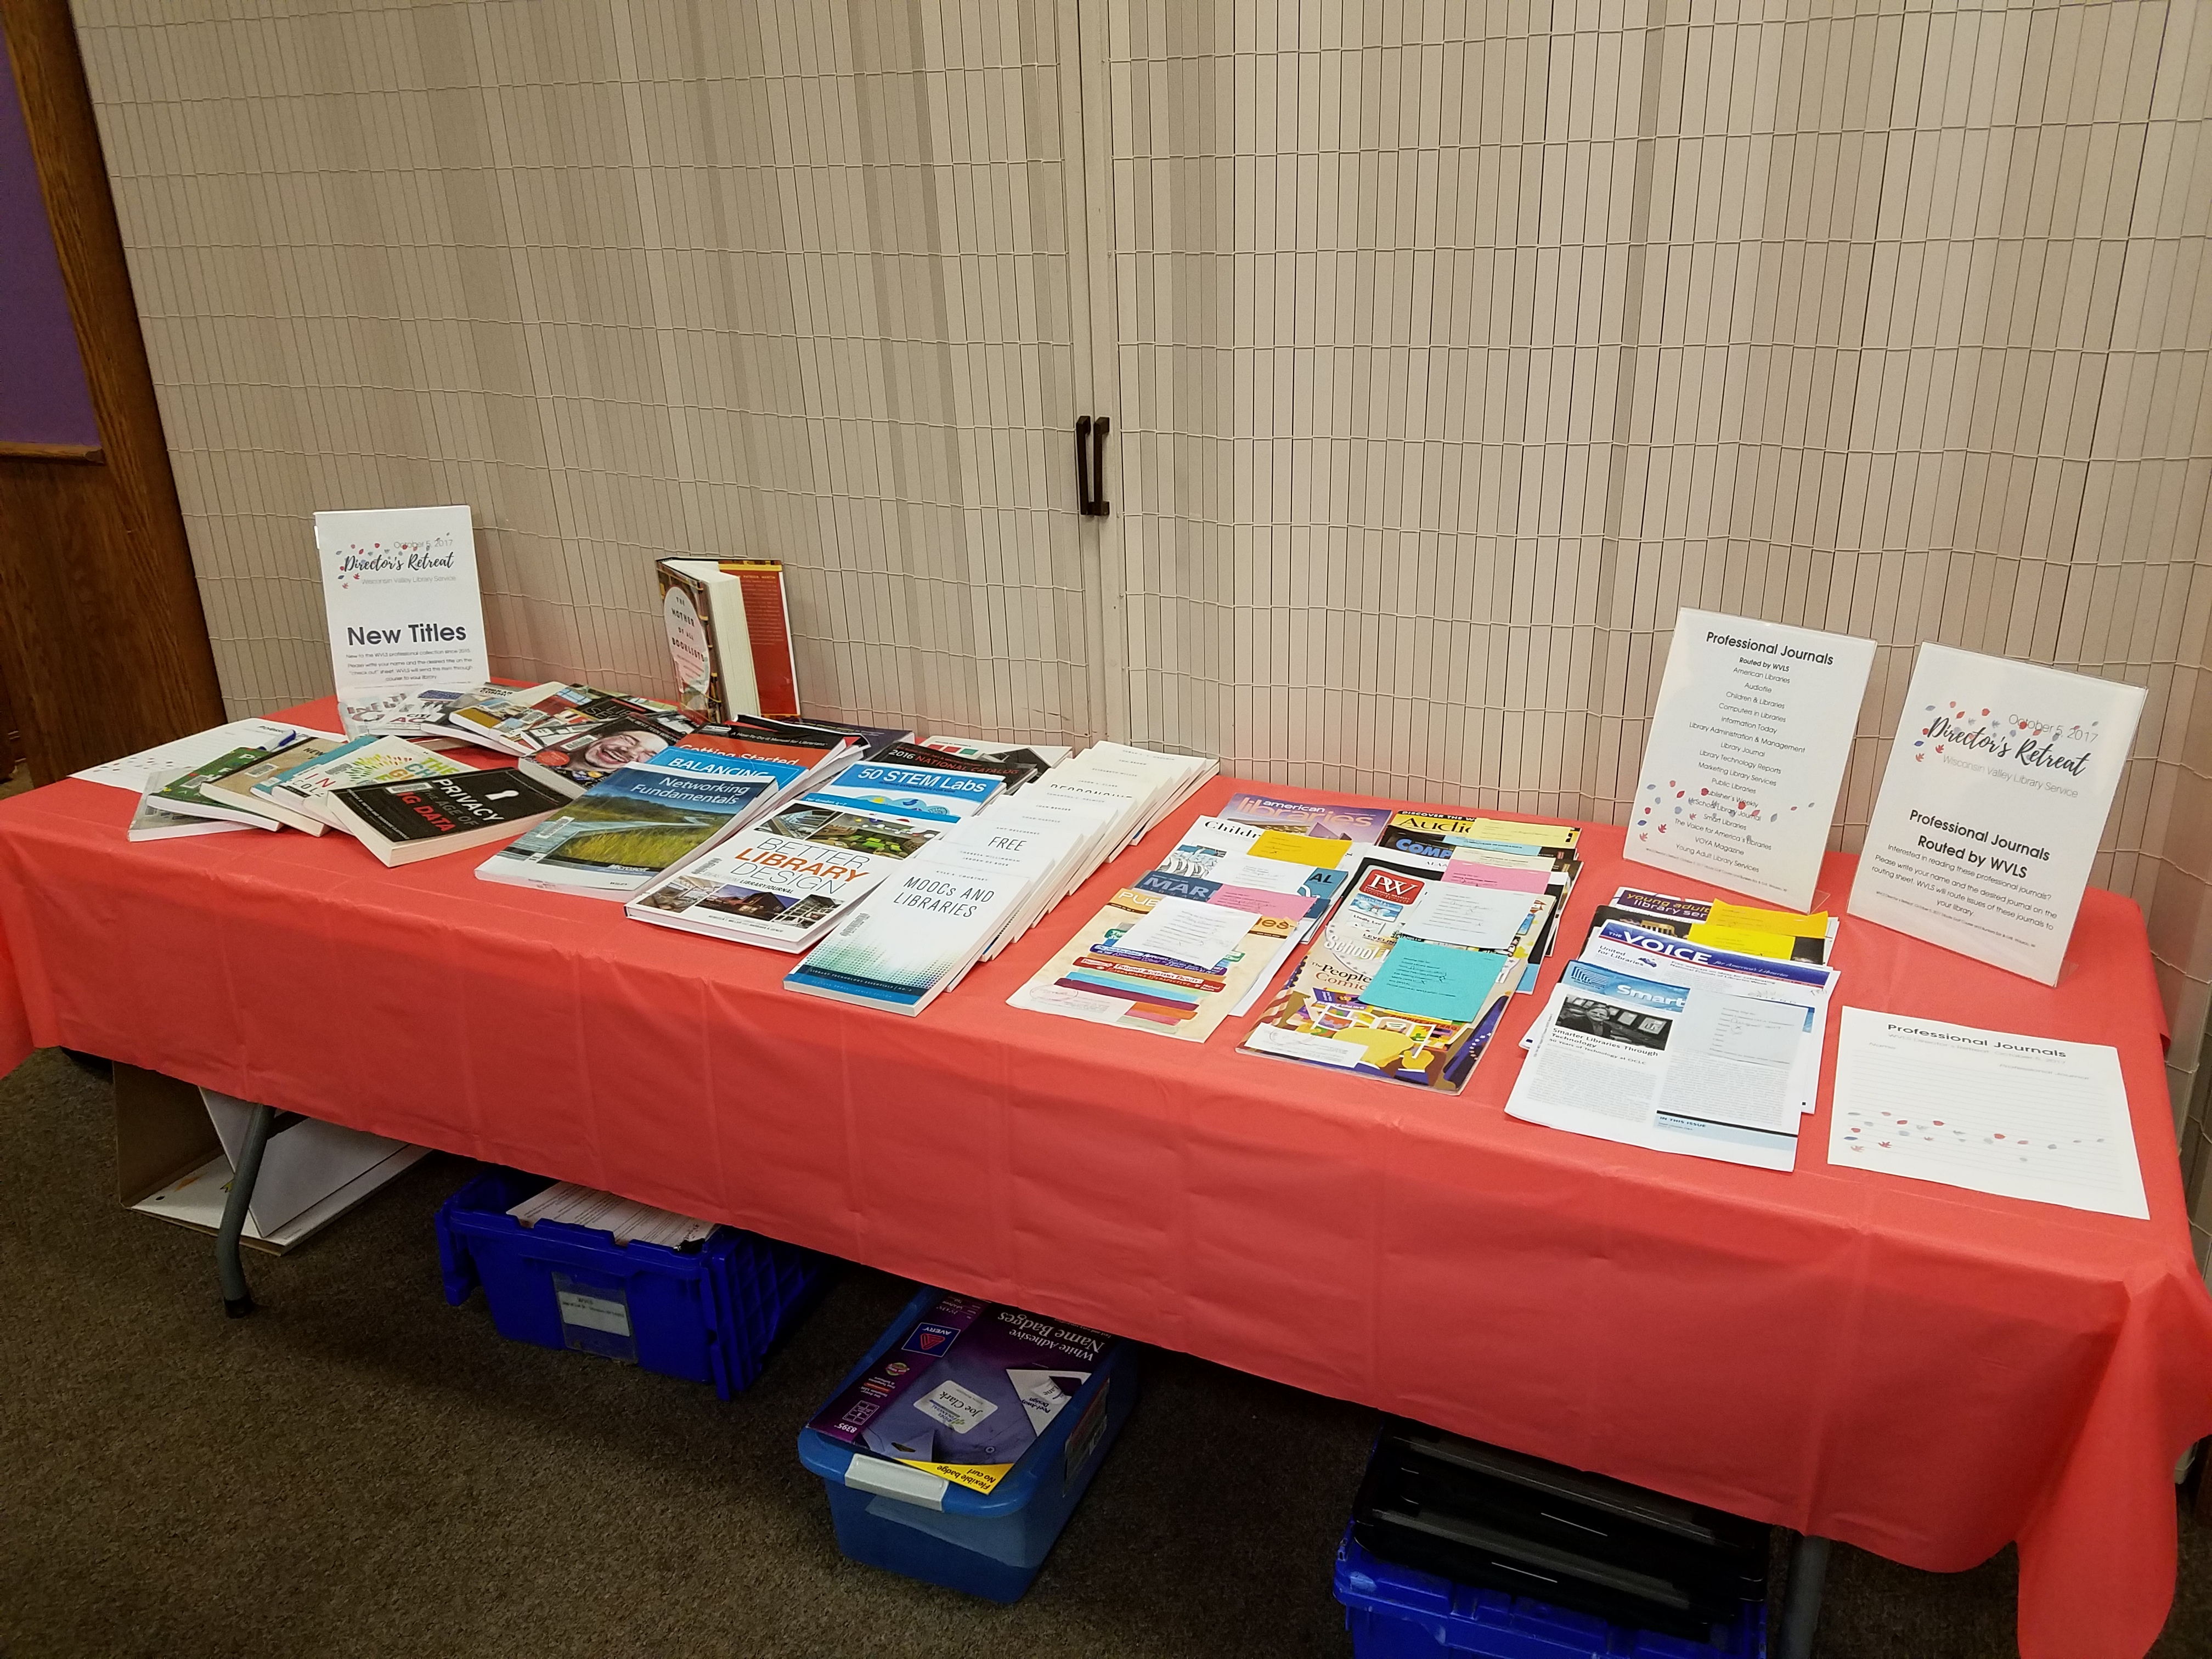 Professional Resources Table